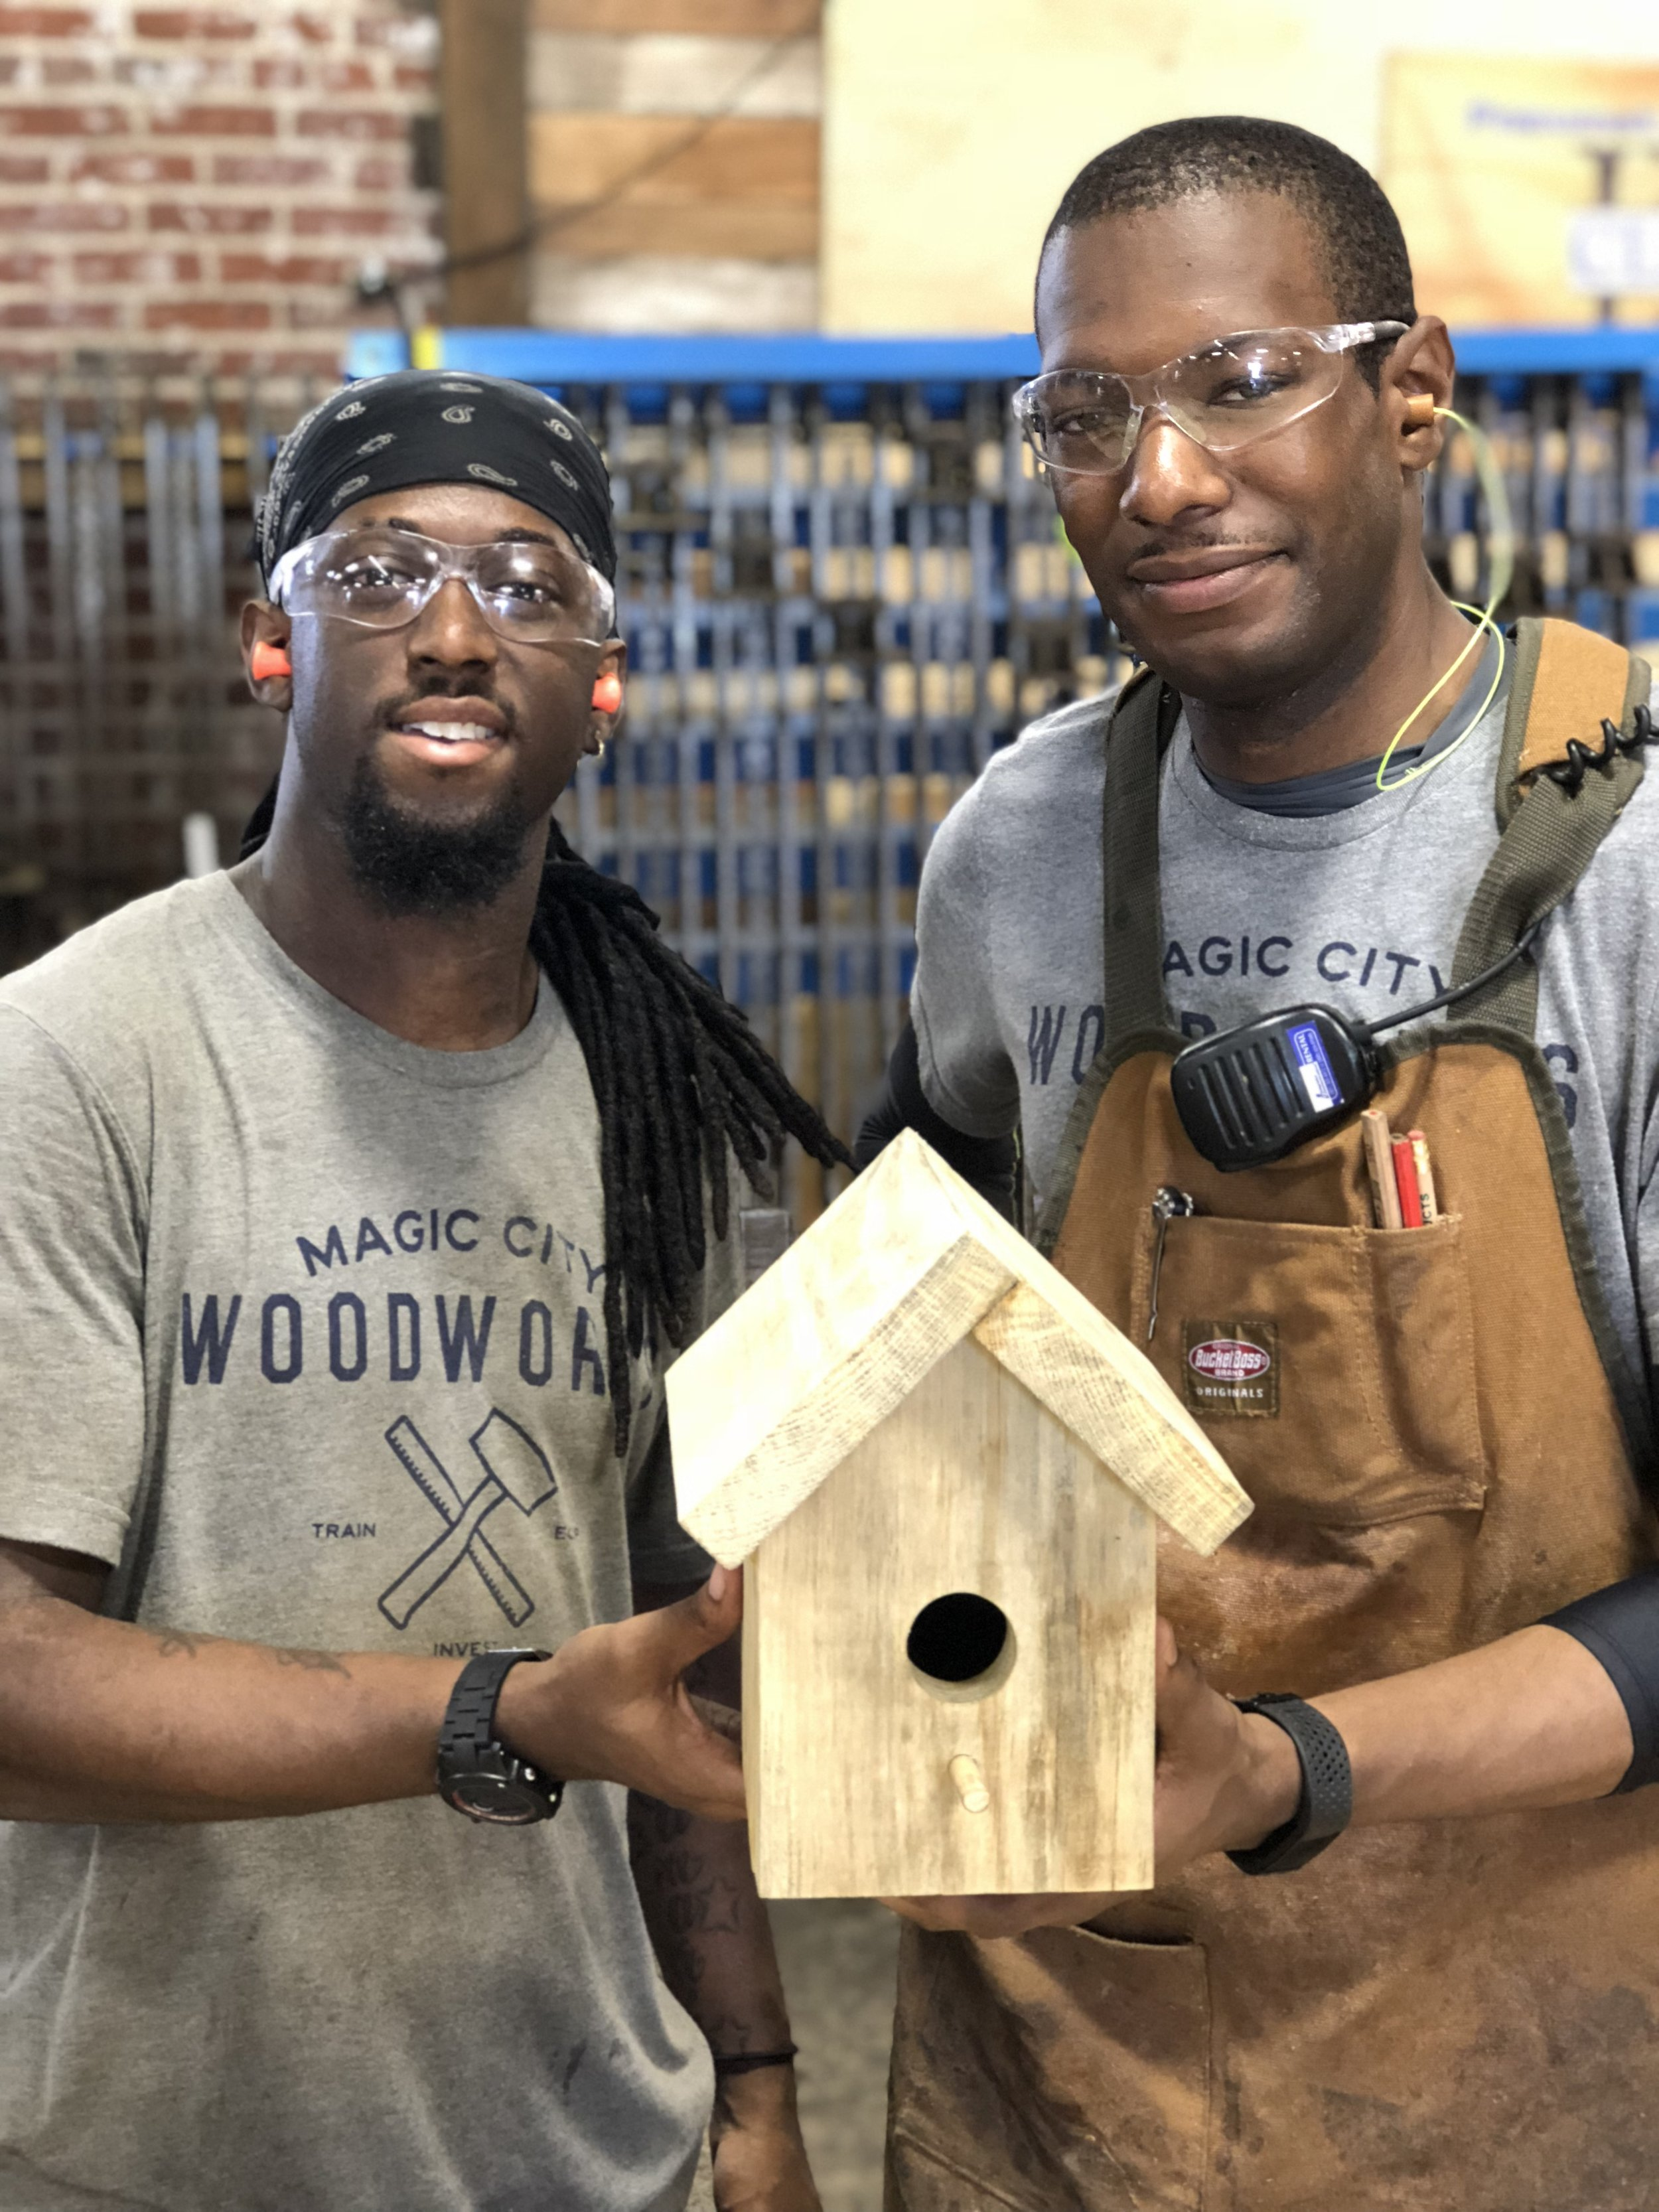 A FEW PIECES OF LUMBER CAN CHANGE LIVES. - An unforgettable experience that impacts young men in Birmingham, AL and brings joy to children everywhere.